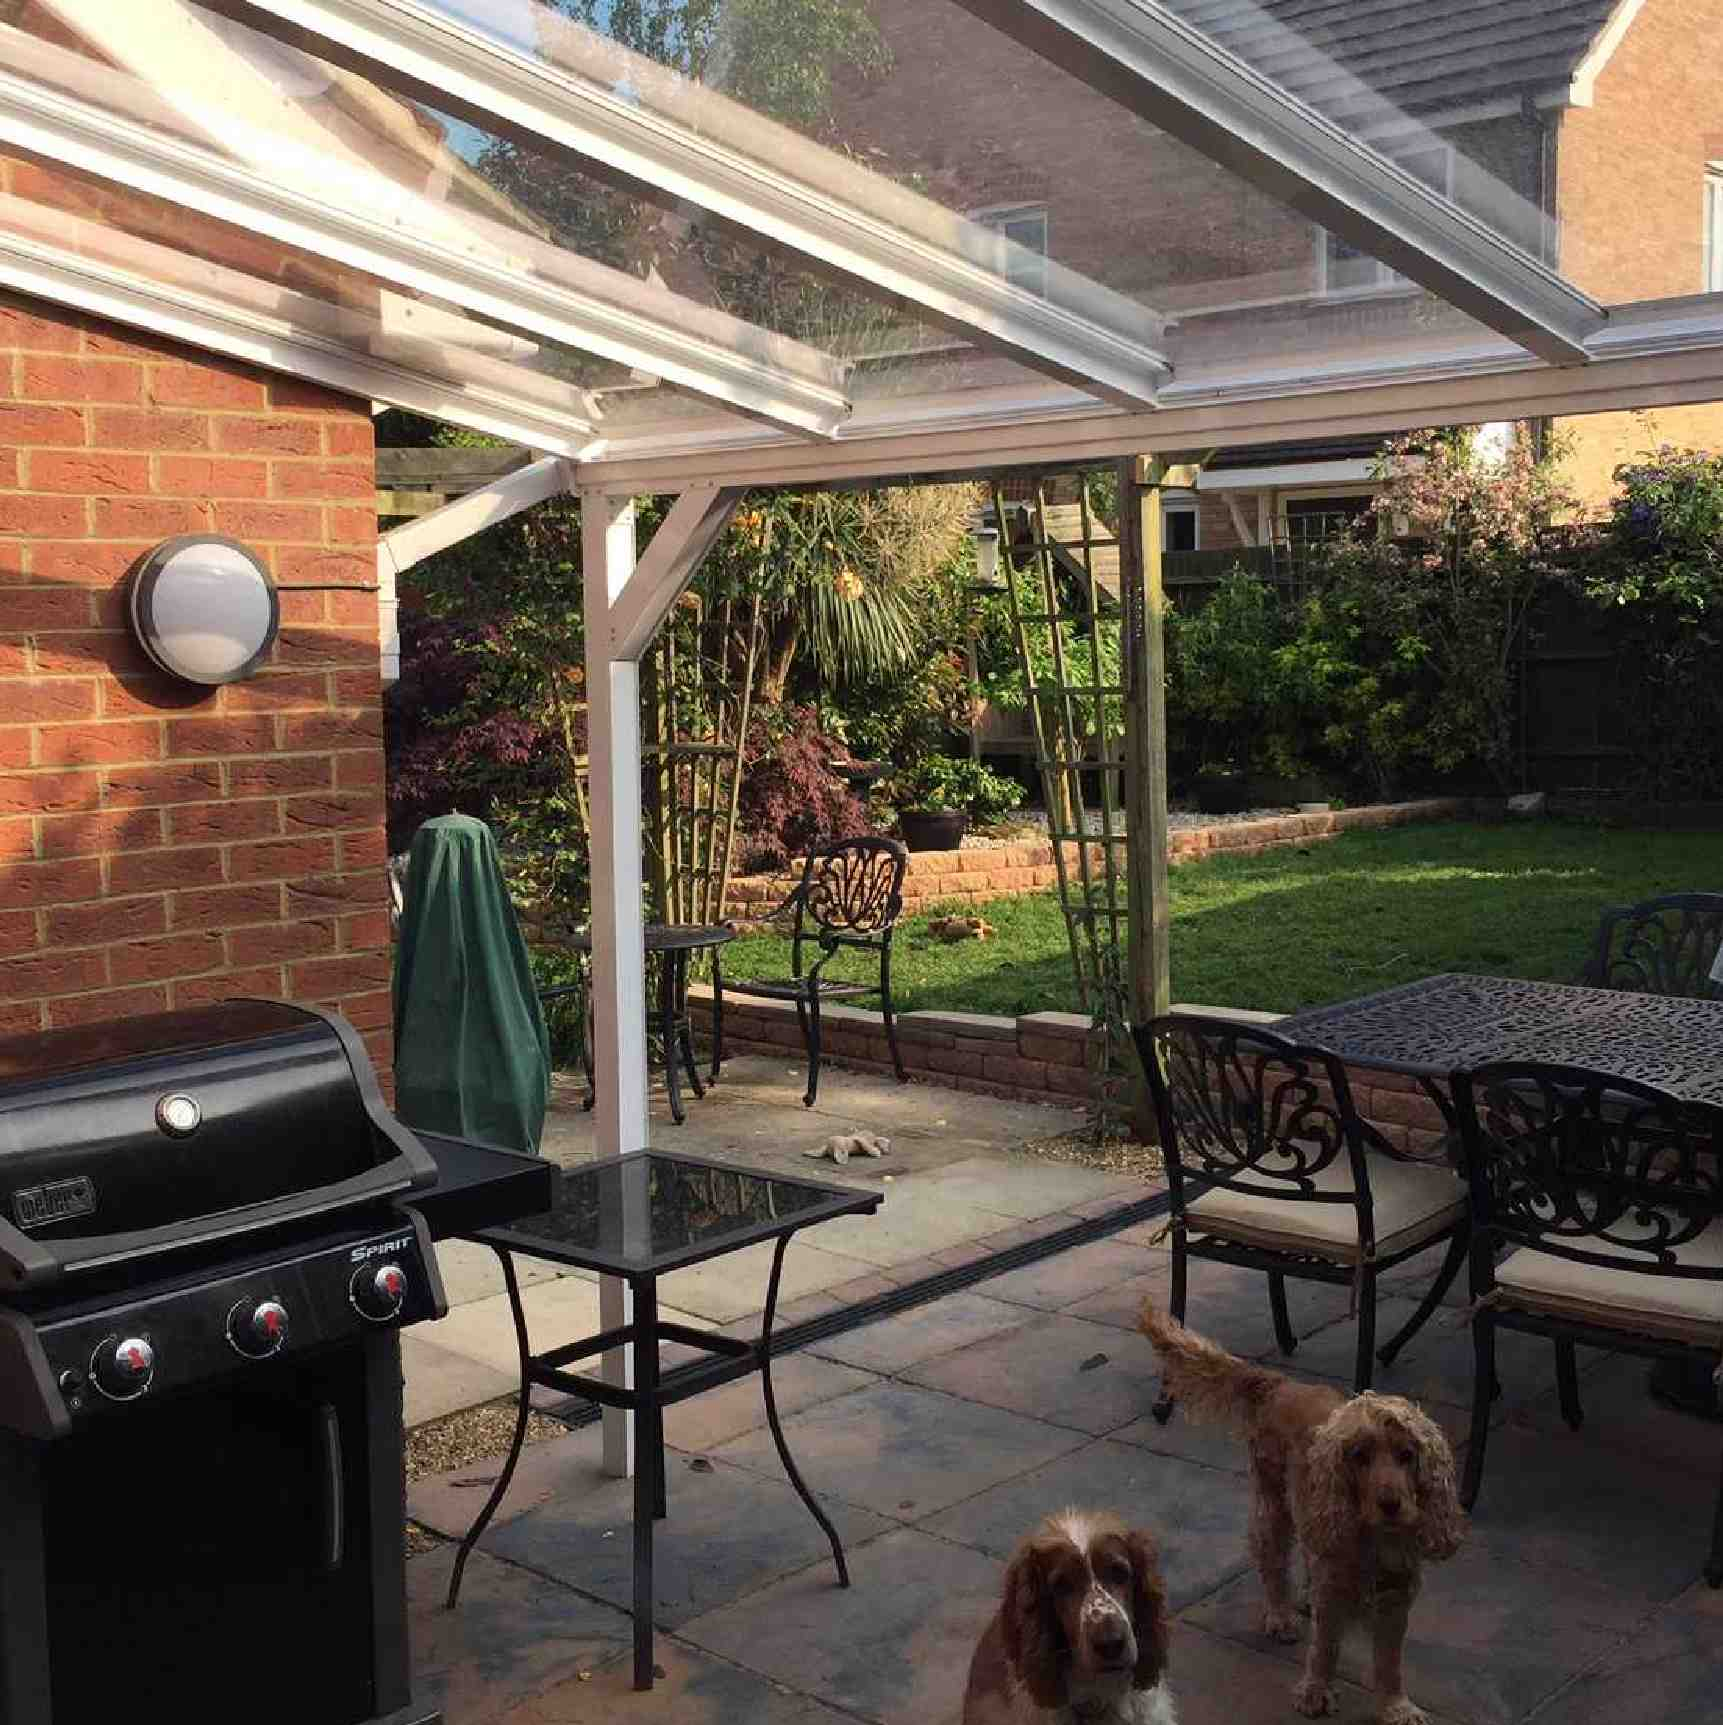 Omega Verandah with 16mm Polycarbonate Glazing - 10.6m (W) x 2.0m (P), (5) Supporting Posts